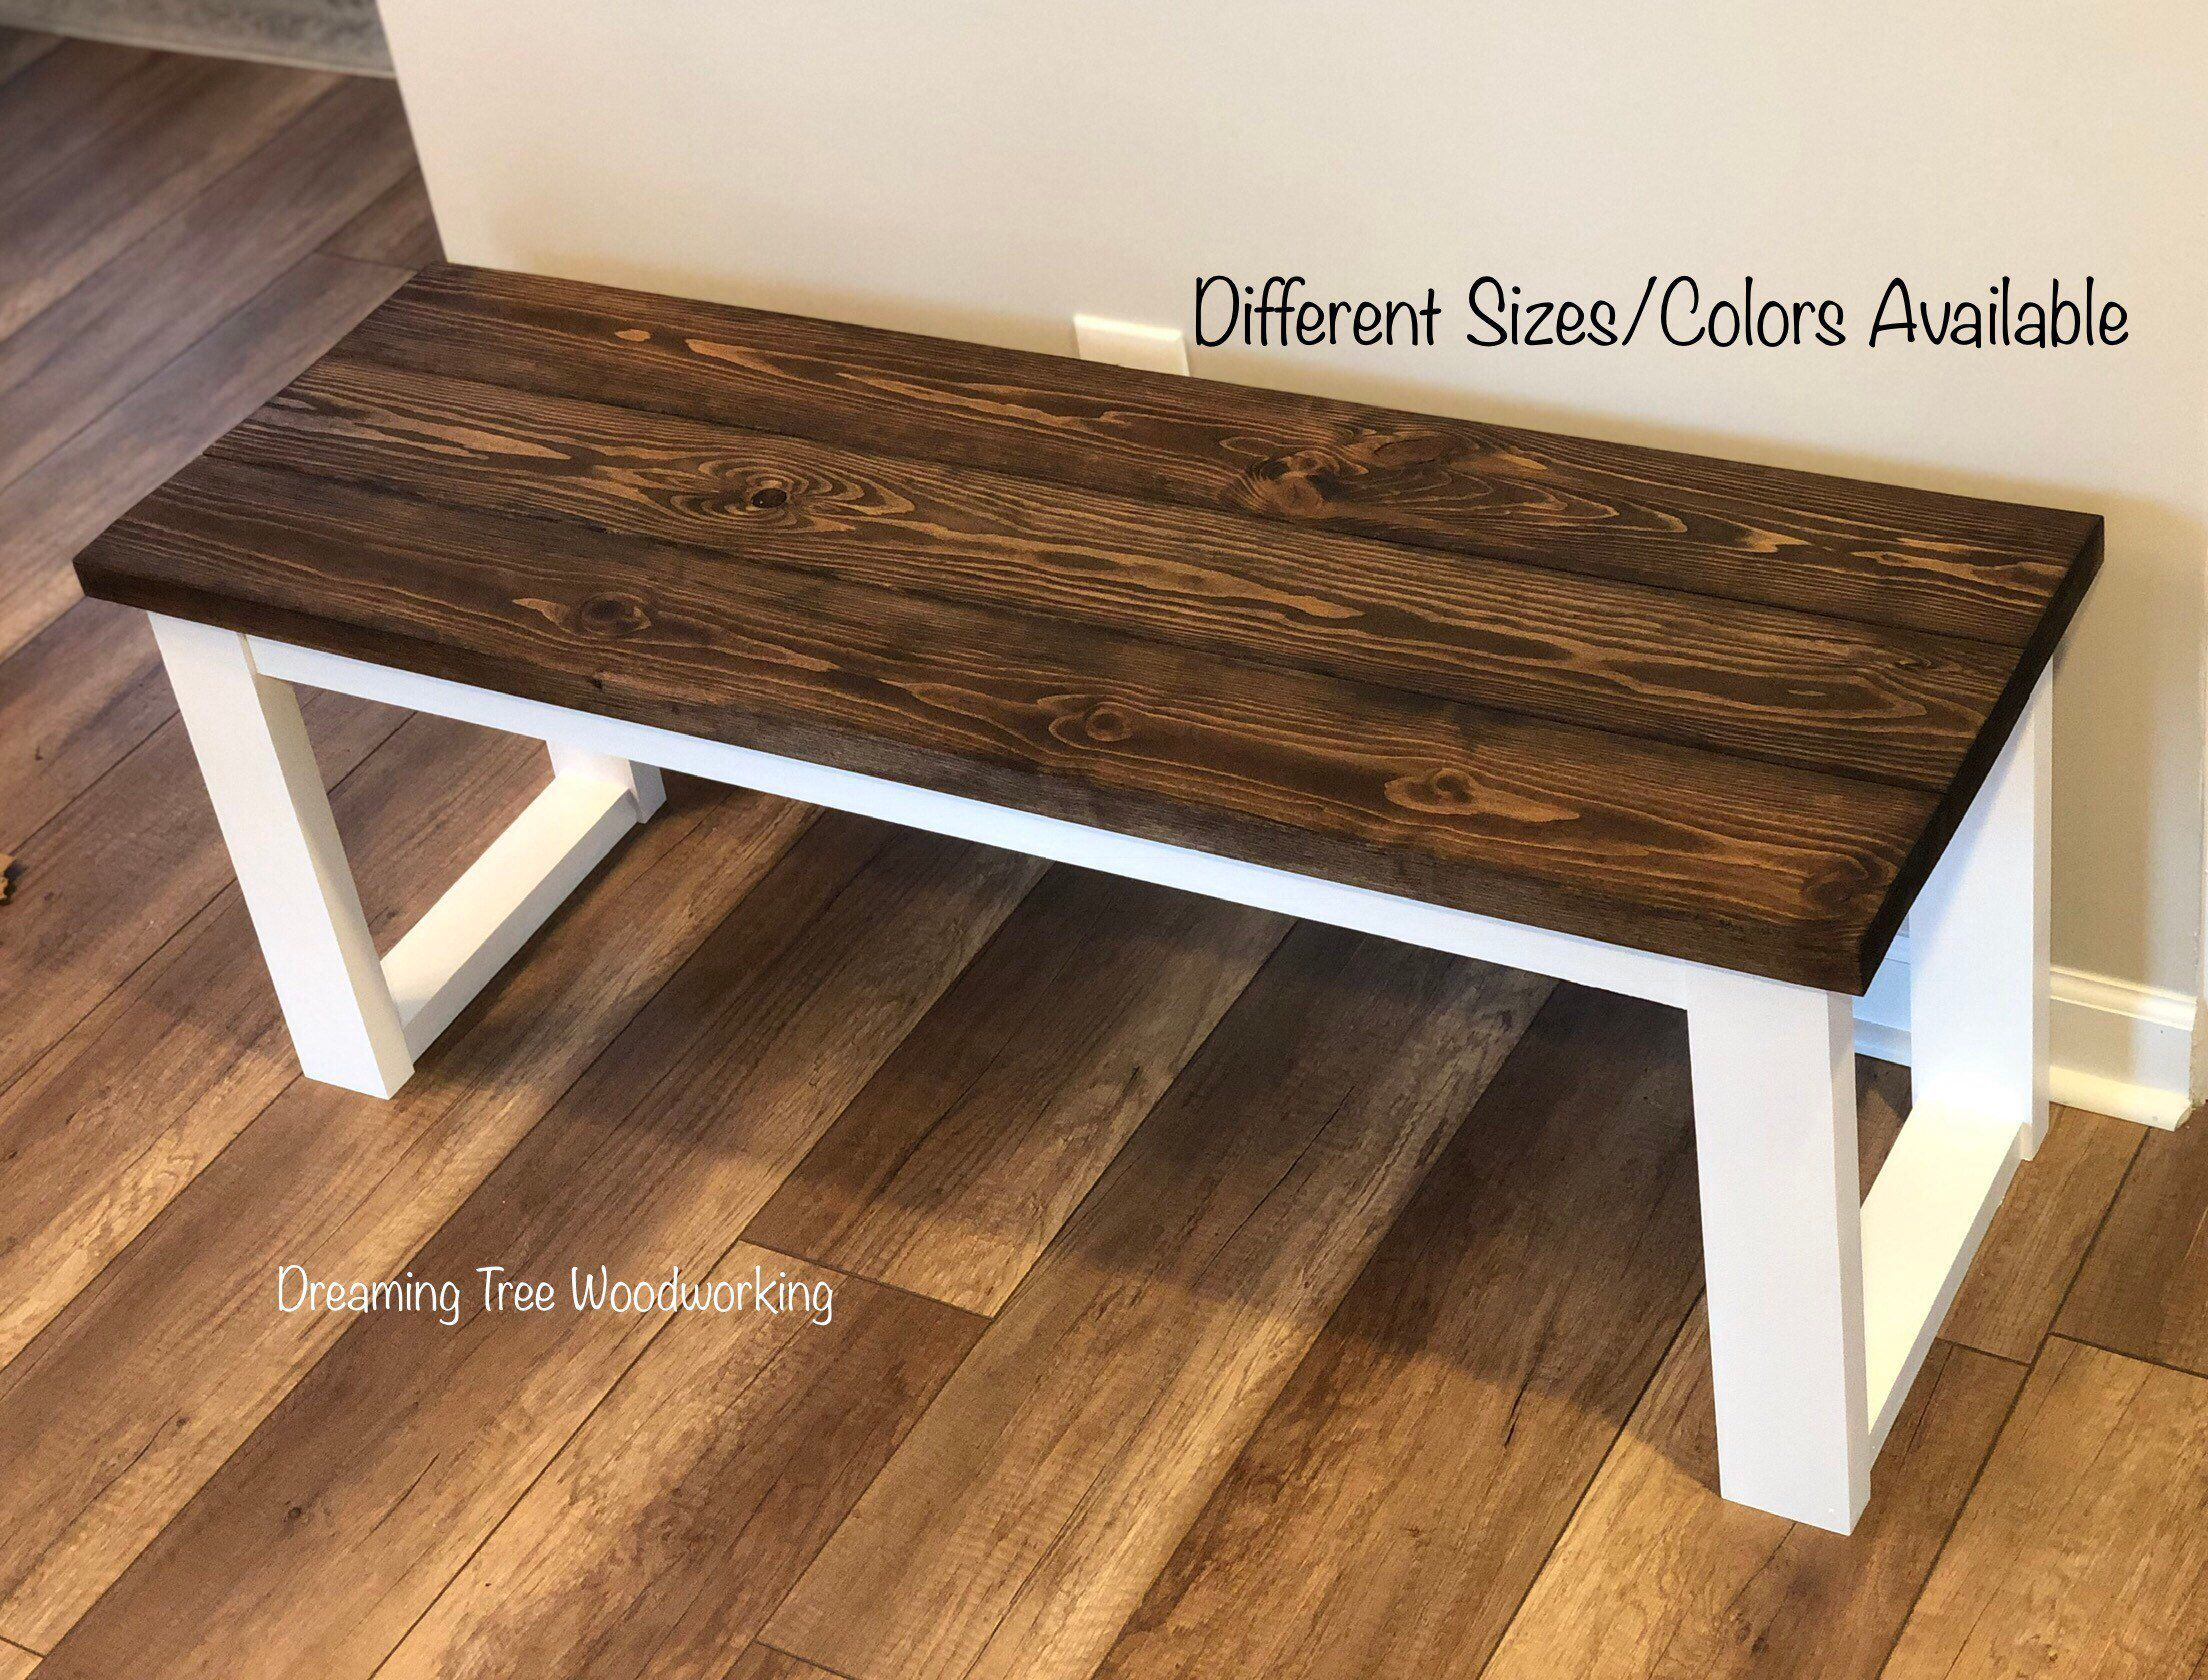 Entryway Bench Farmhouse Style Wood Bench Entrybench Entrywaybench Farmhousebench Rusticbench Woodbench Farmhous Diy Wood Bench Diy Furniture Furniture